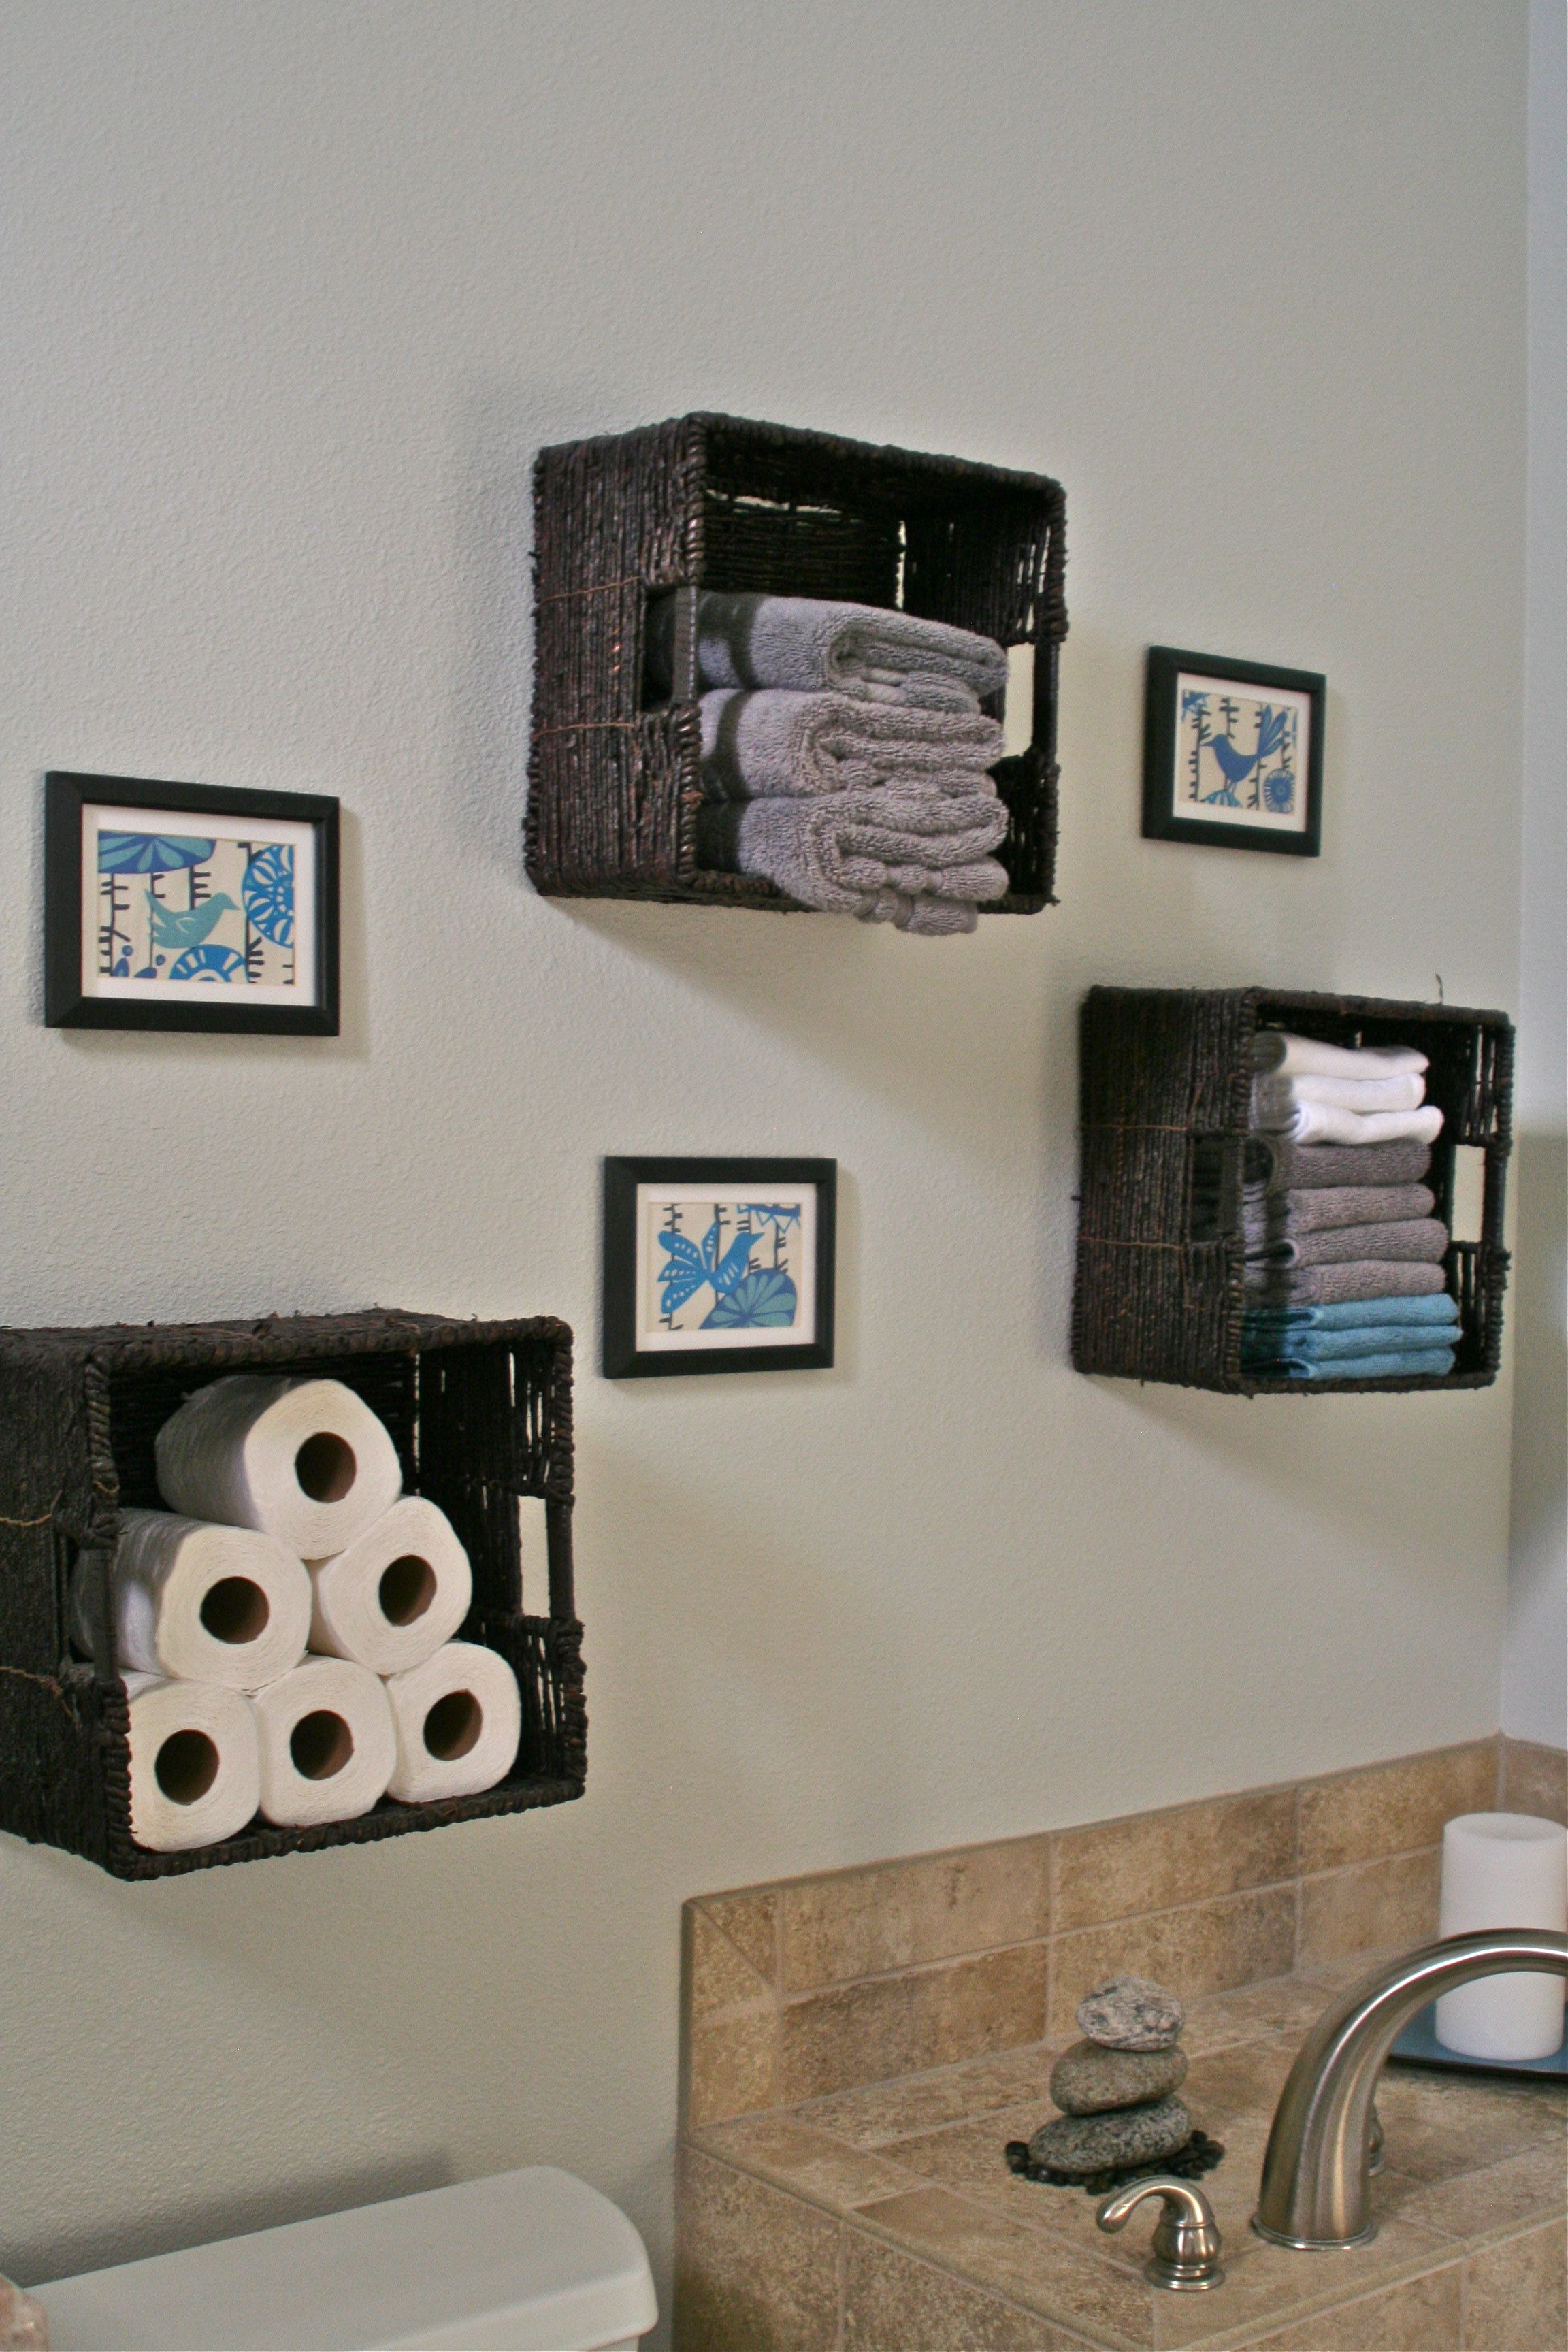 Bathroom Storage Baskets For Towels Toilet Paper Etc Love pertaining to proportions 2304 X 3456